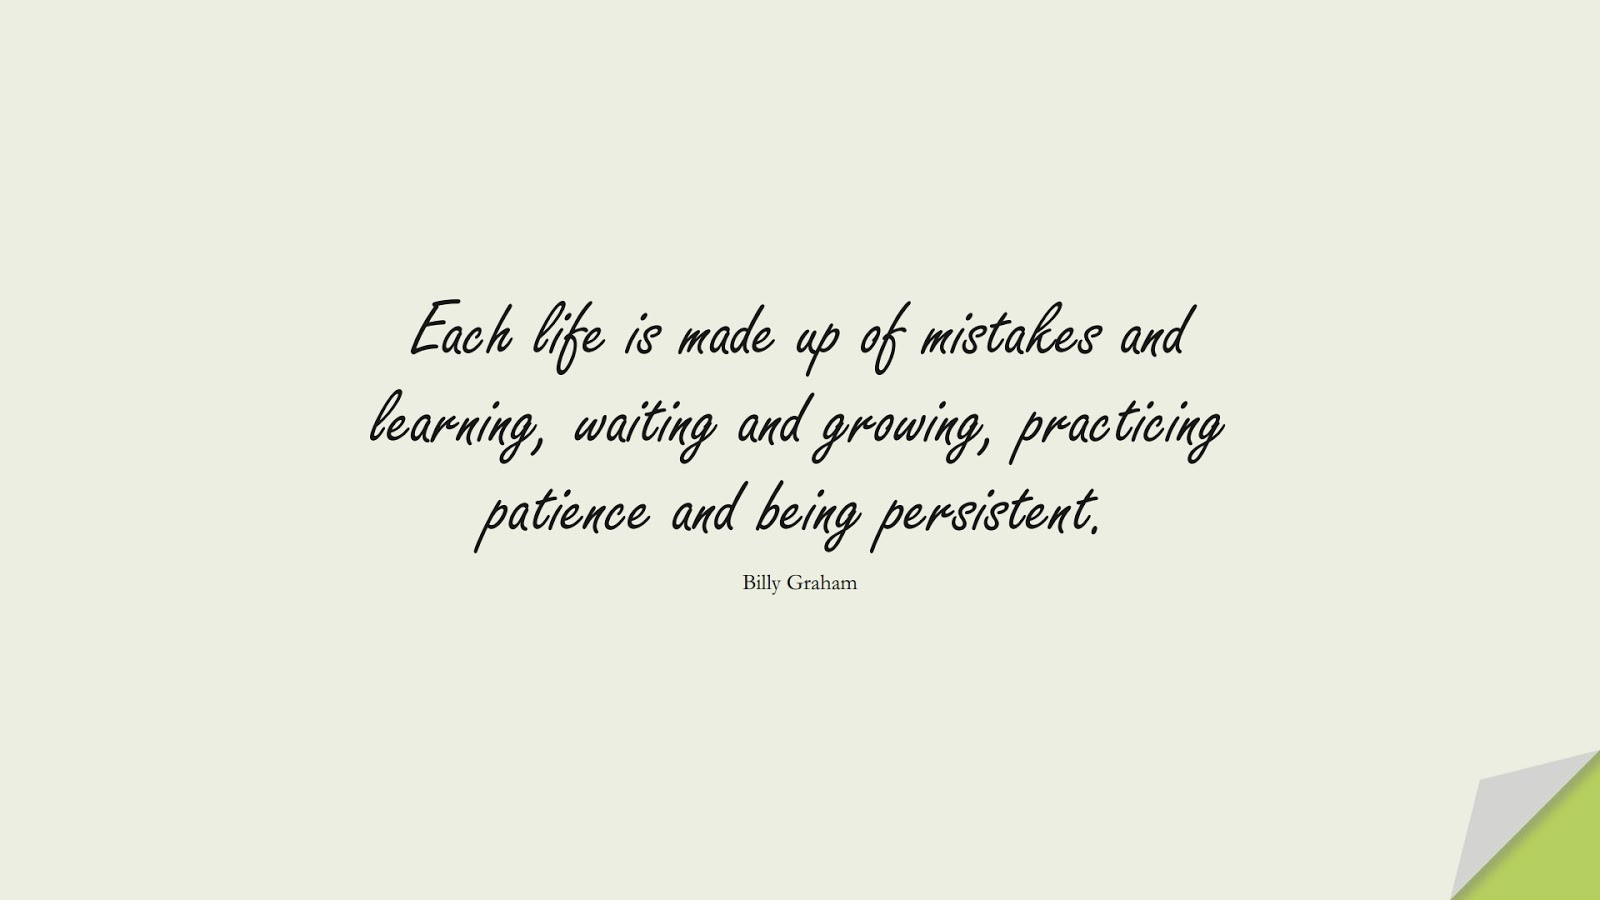 Each life is made up of mistakes and learning, waiting and growing, practicing patience and being persistent. (Billy Graham);  #HappinessQuotes